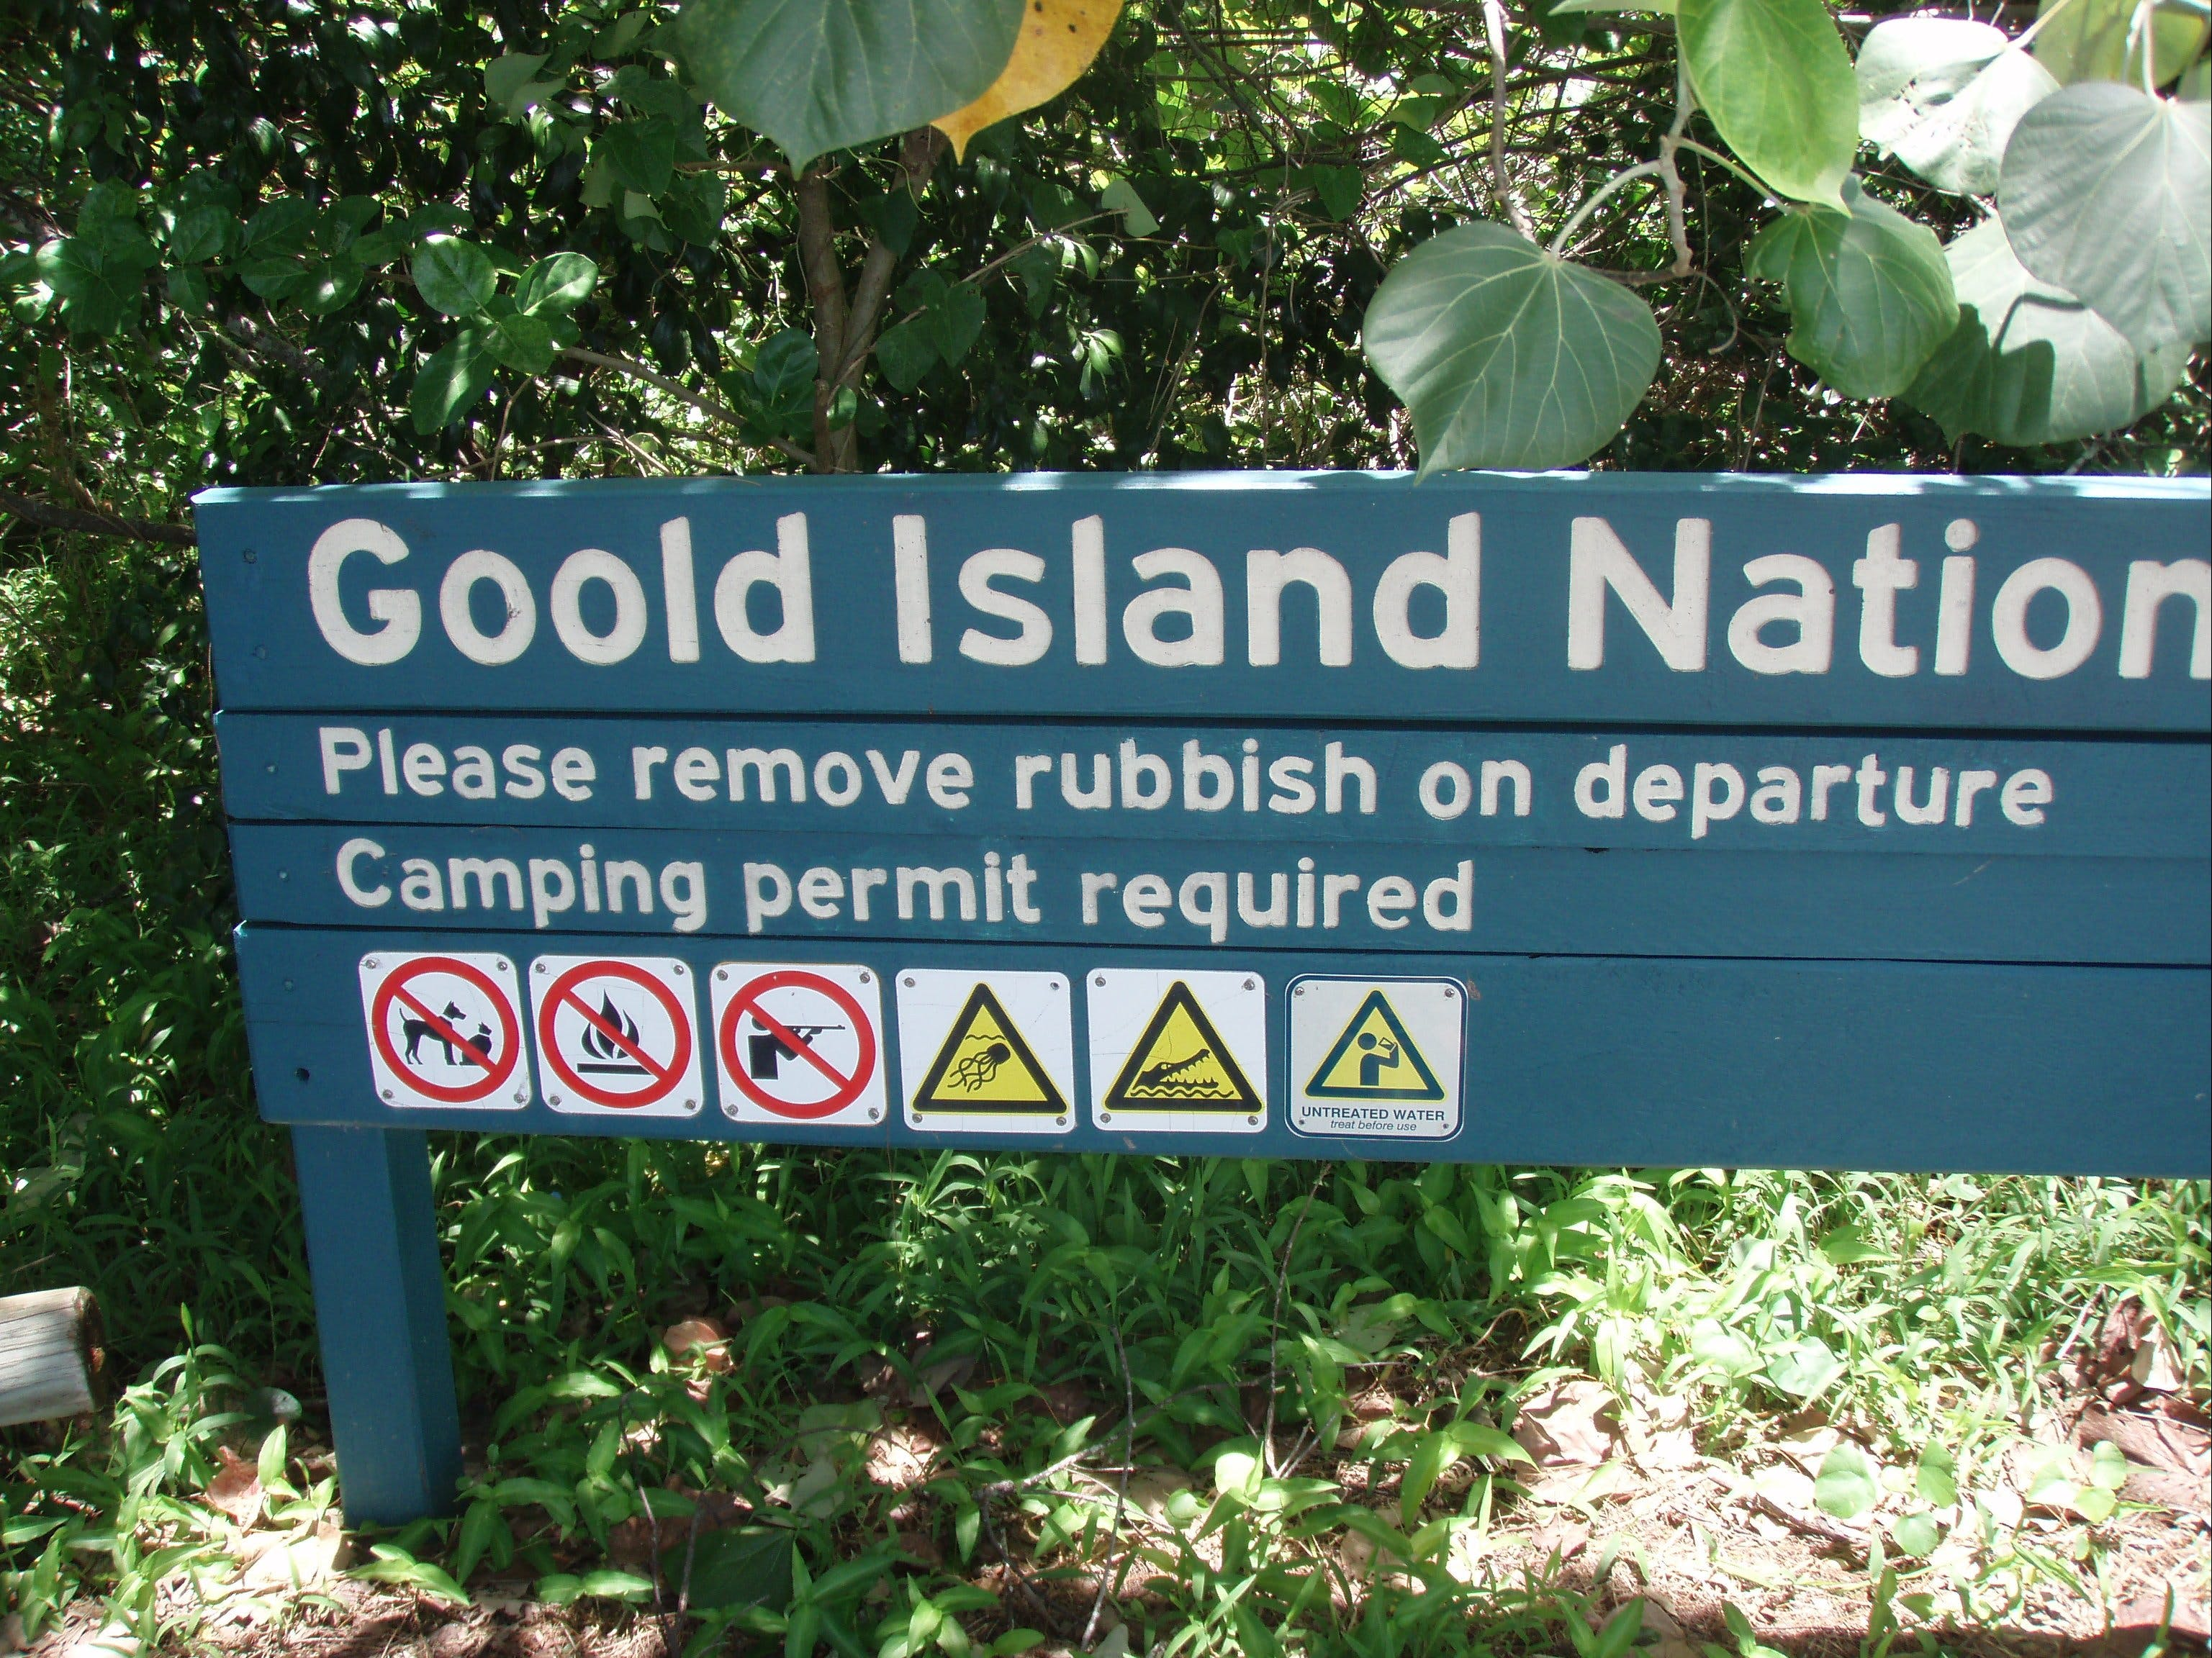 Goold Island National Park - Tweed Heads Accommodation